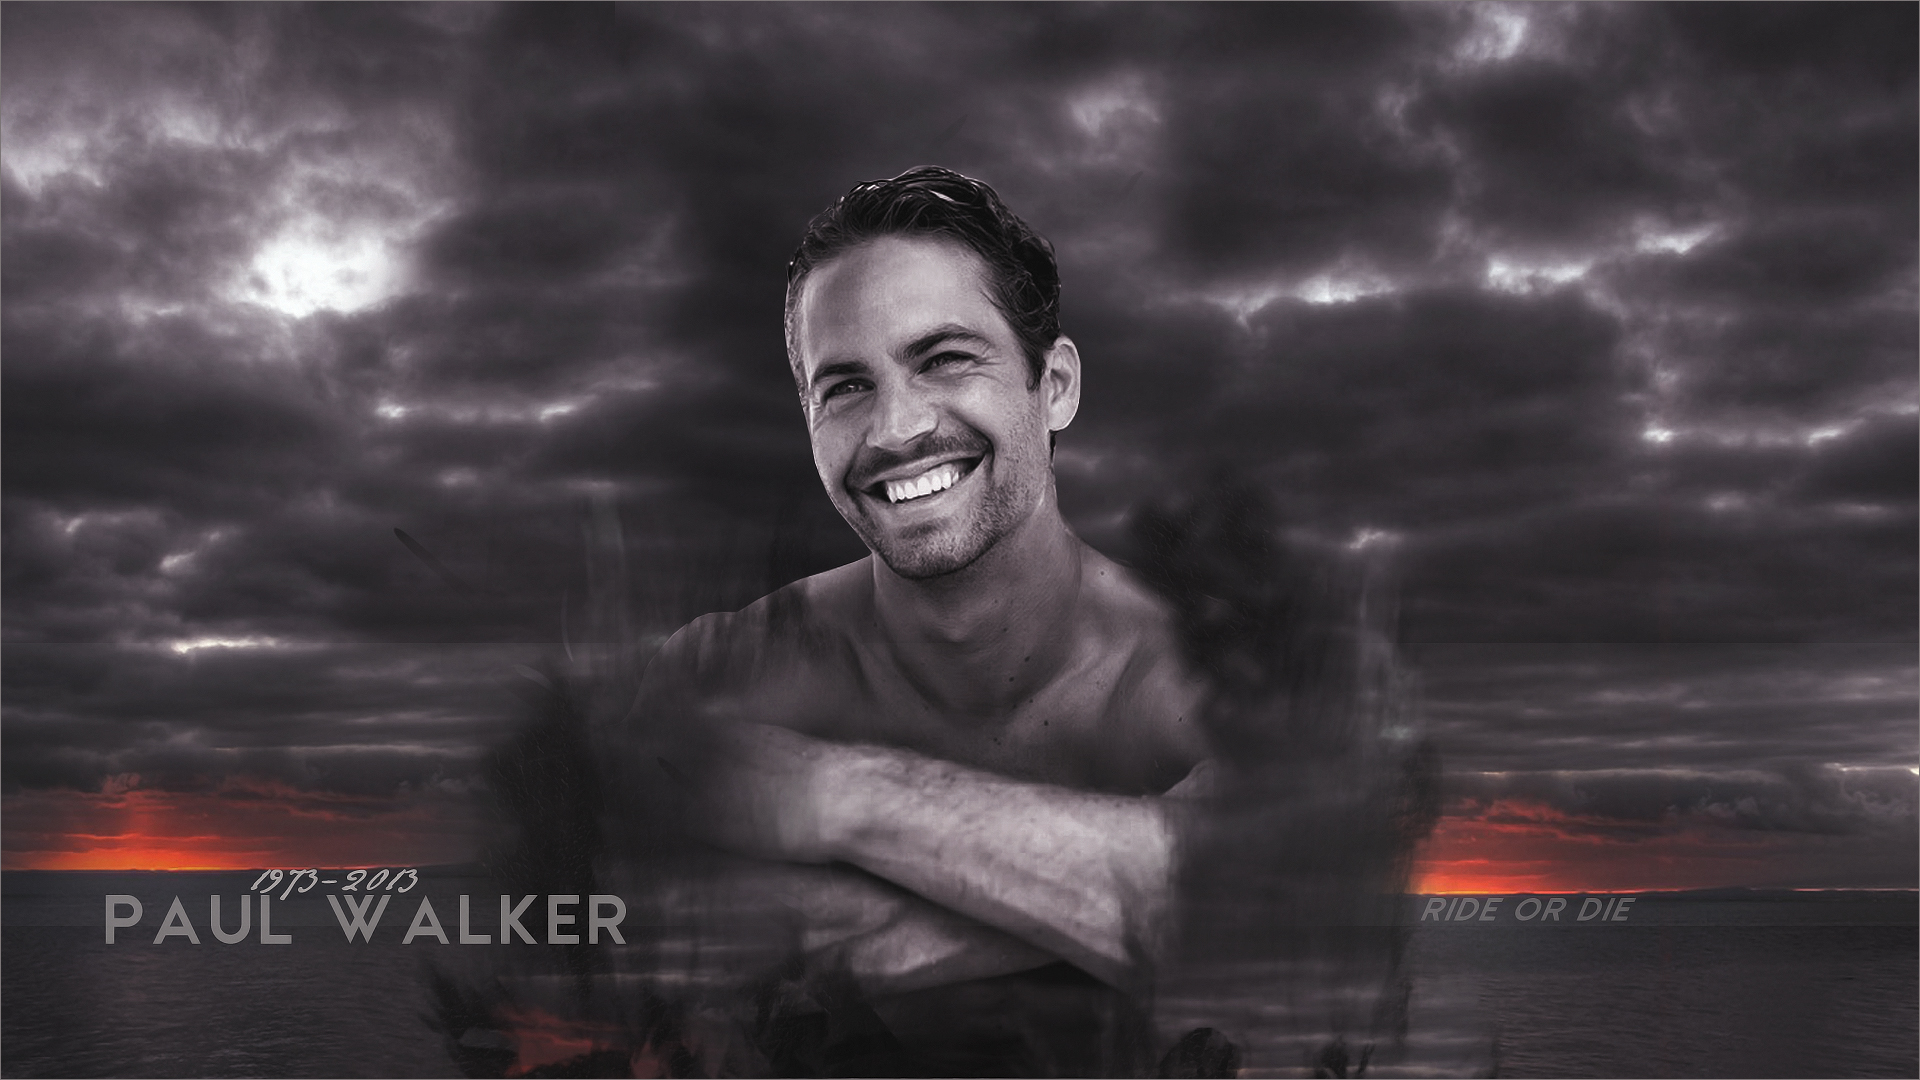 tribue to paul walker rest in peace by zhiken on deviantart